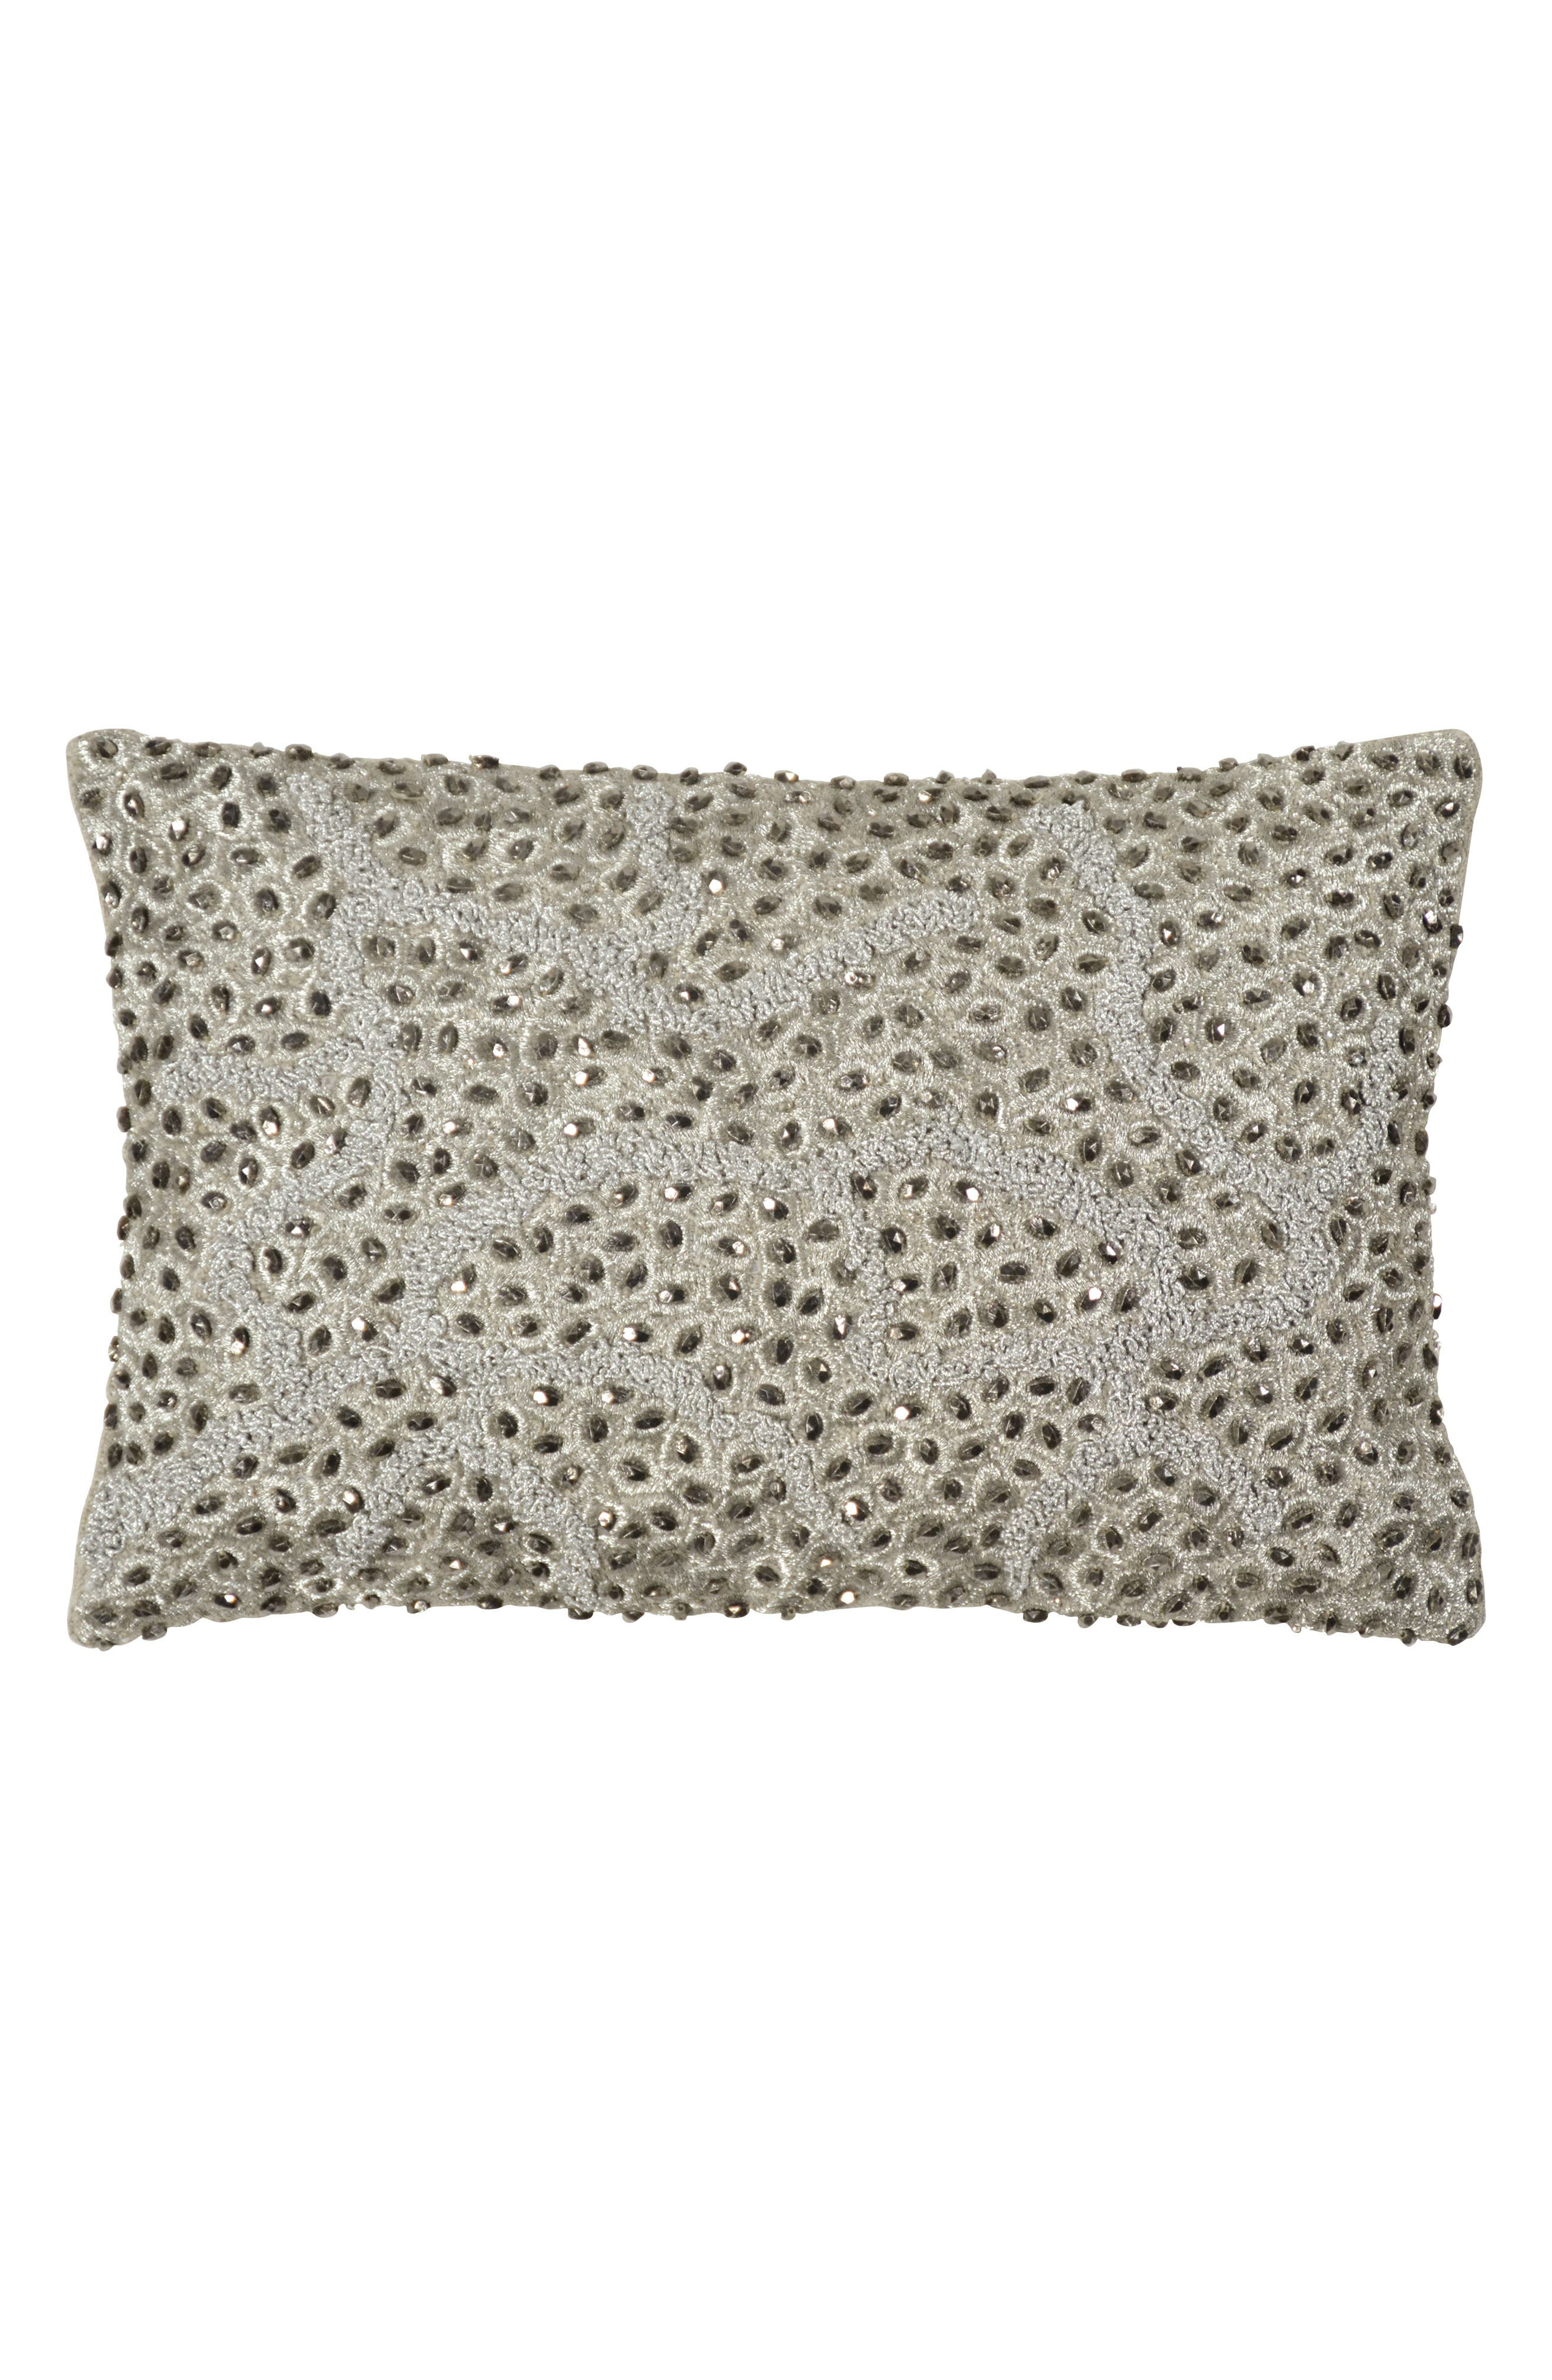 Micahel Aram Pomegranate Beaded Accent Pillow,                         Main,                         color, 040